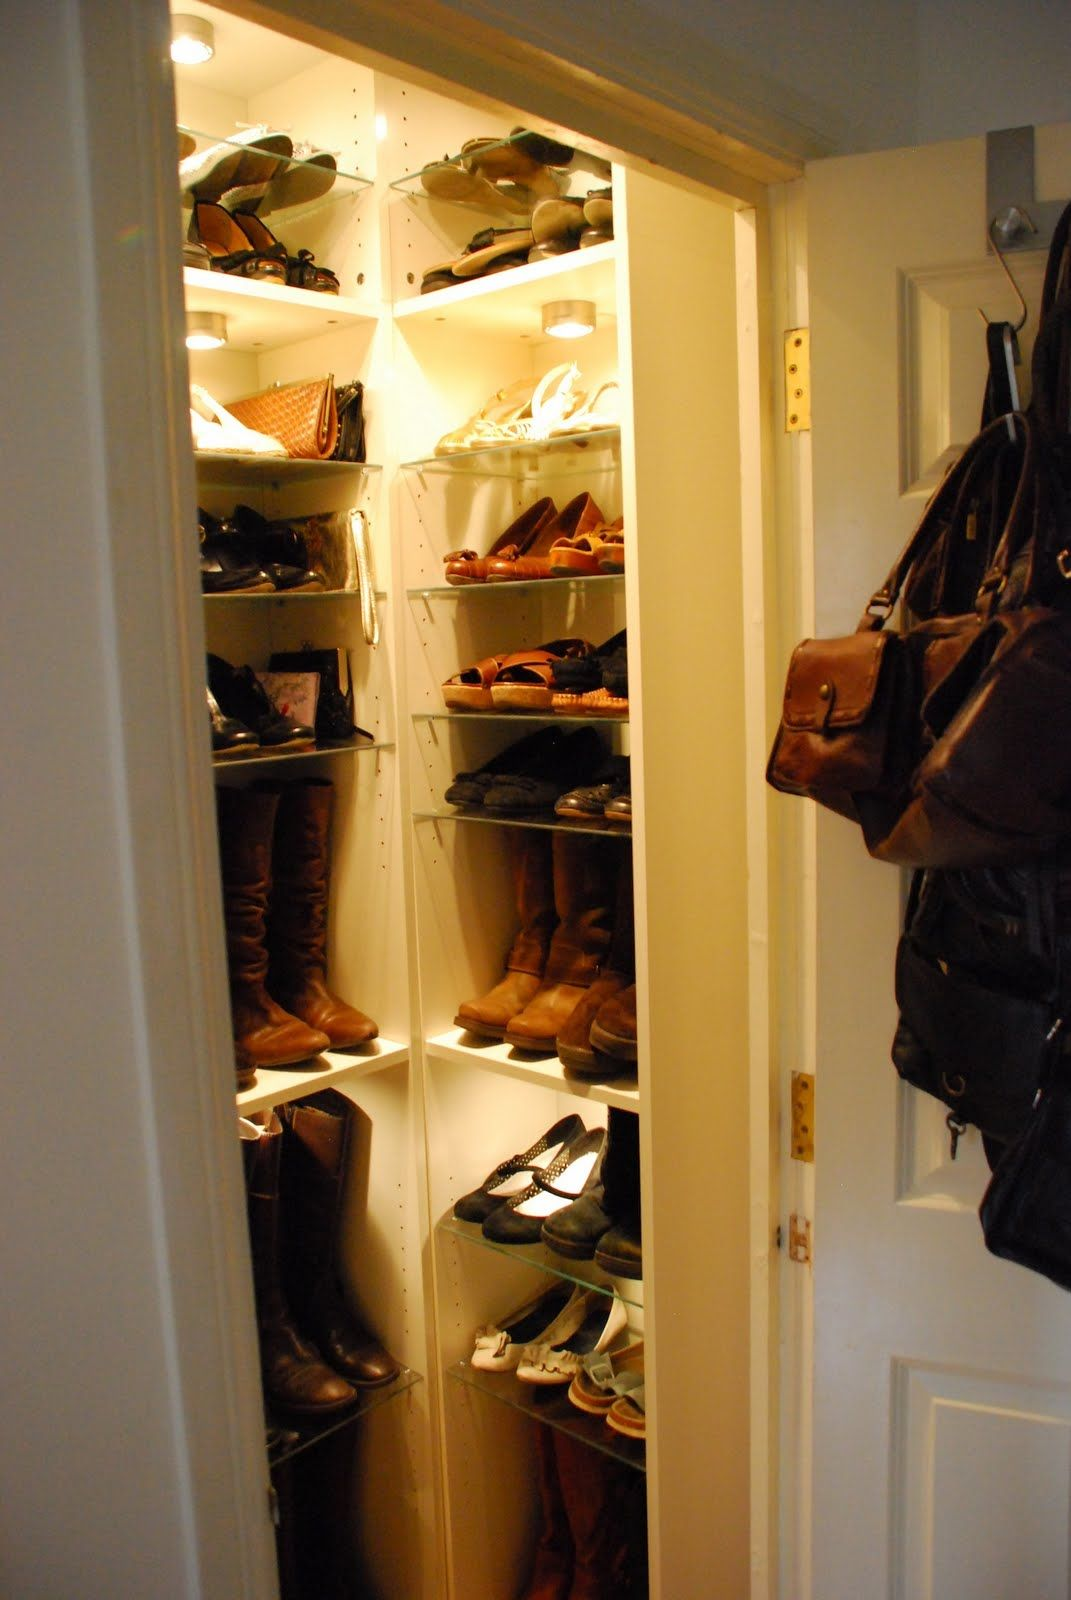 Small Closet Turned Shoe Room Via Bookshelves Lights! Love This! Maybe This  Could Be A Bday Gift!?